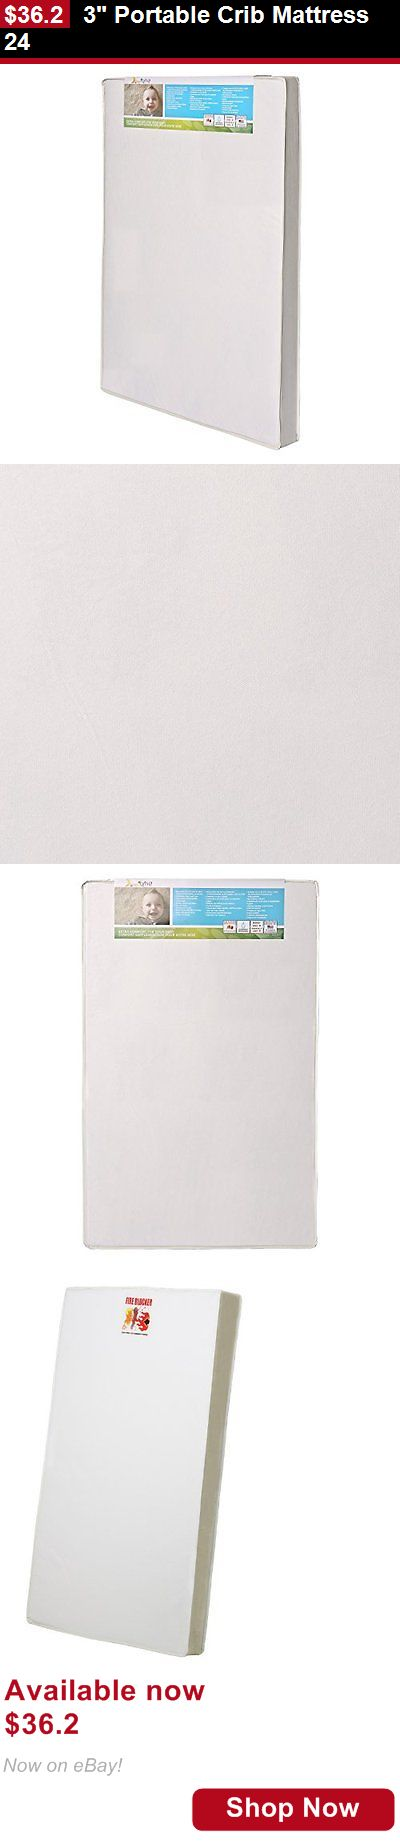 Crib Mattresses: 3 Portable Crib Mattress 24 BUY IT NOW ONLY: $36.2